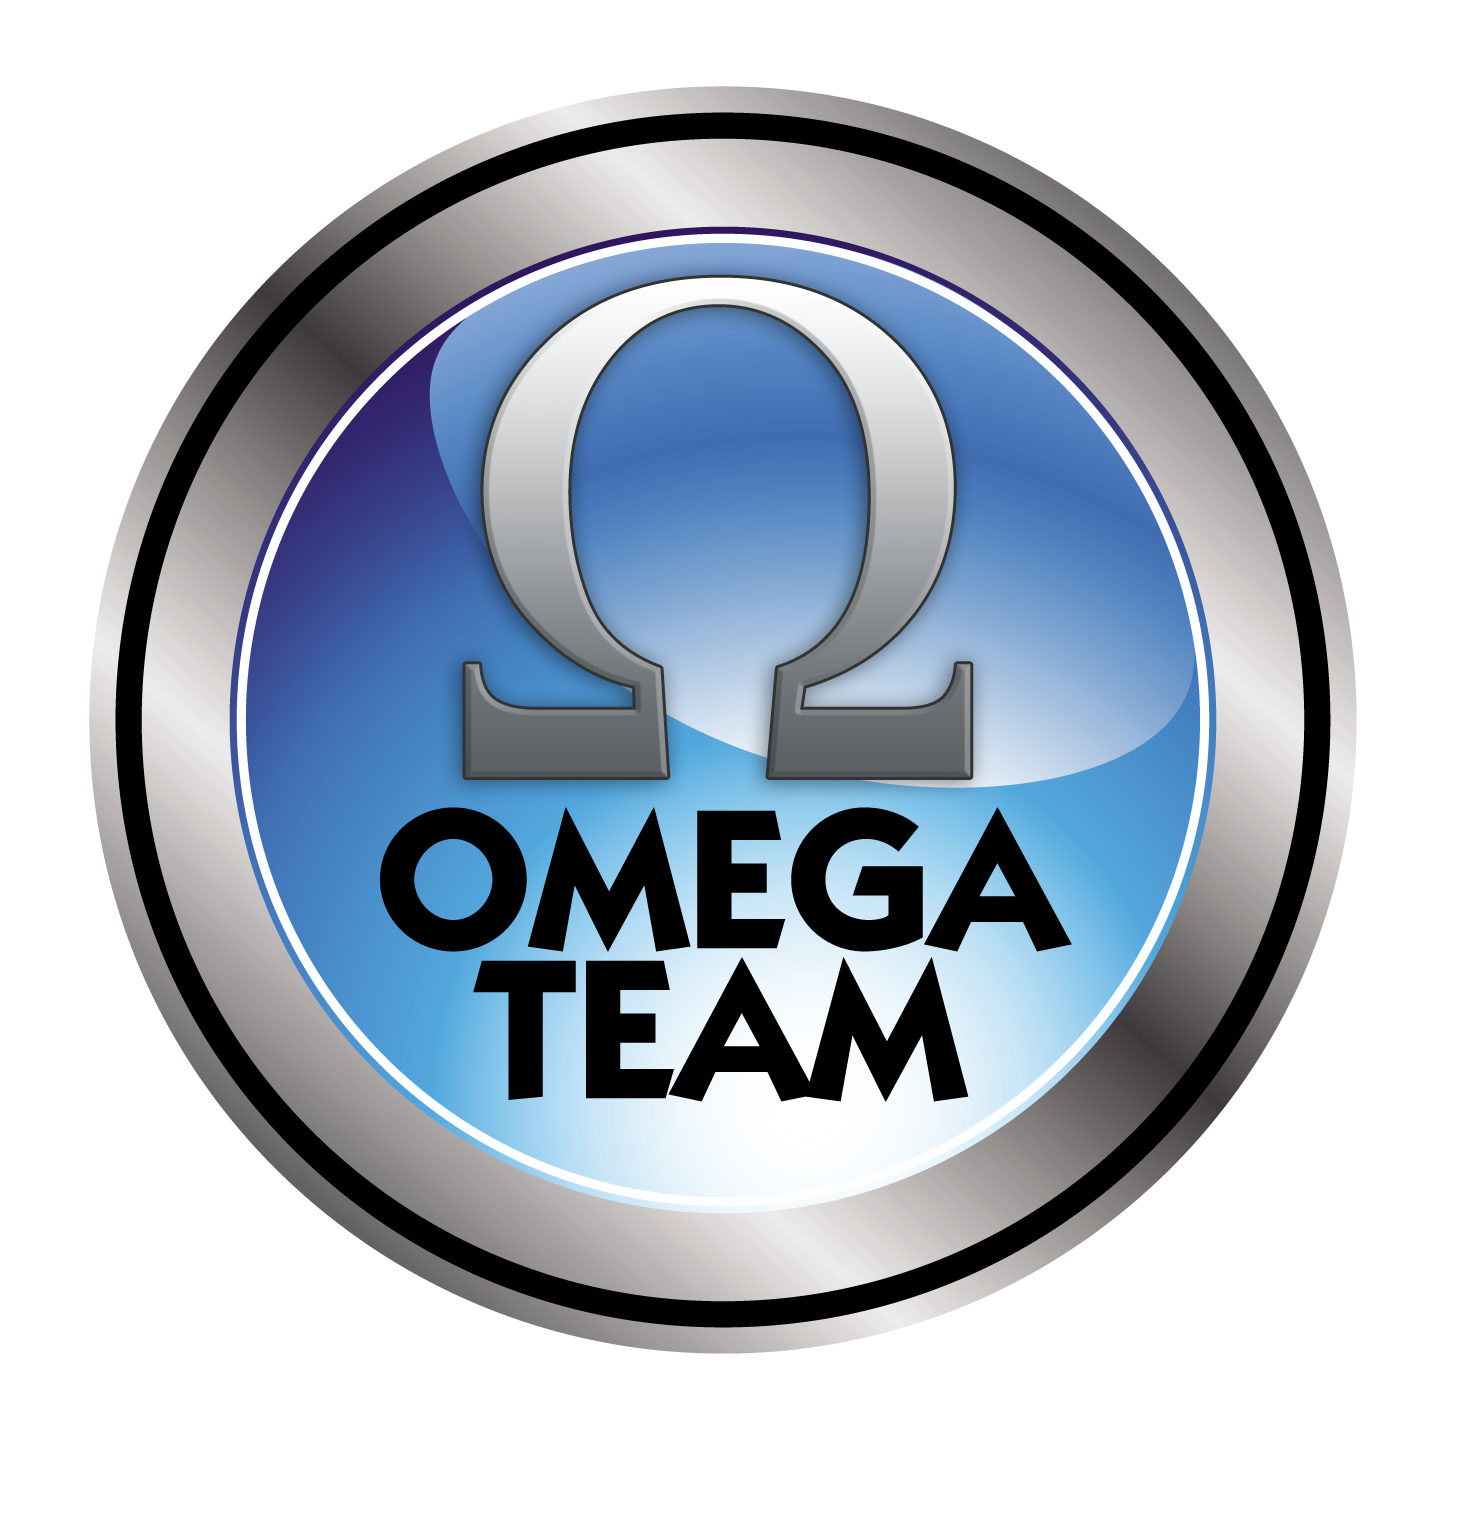 omega-team-logo-highresolution-copy.png